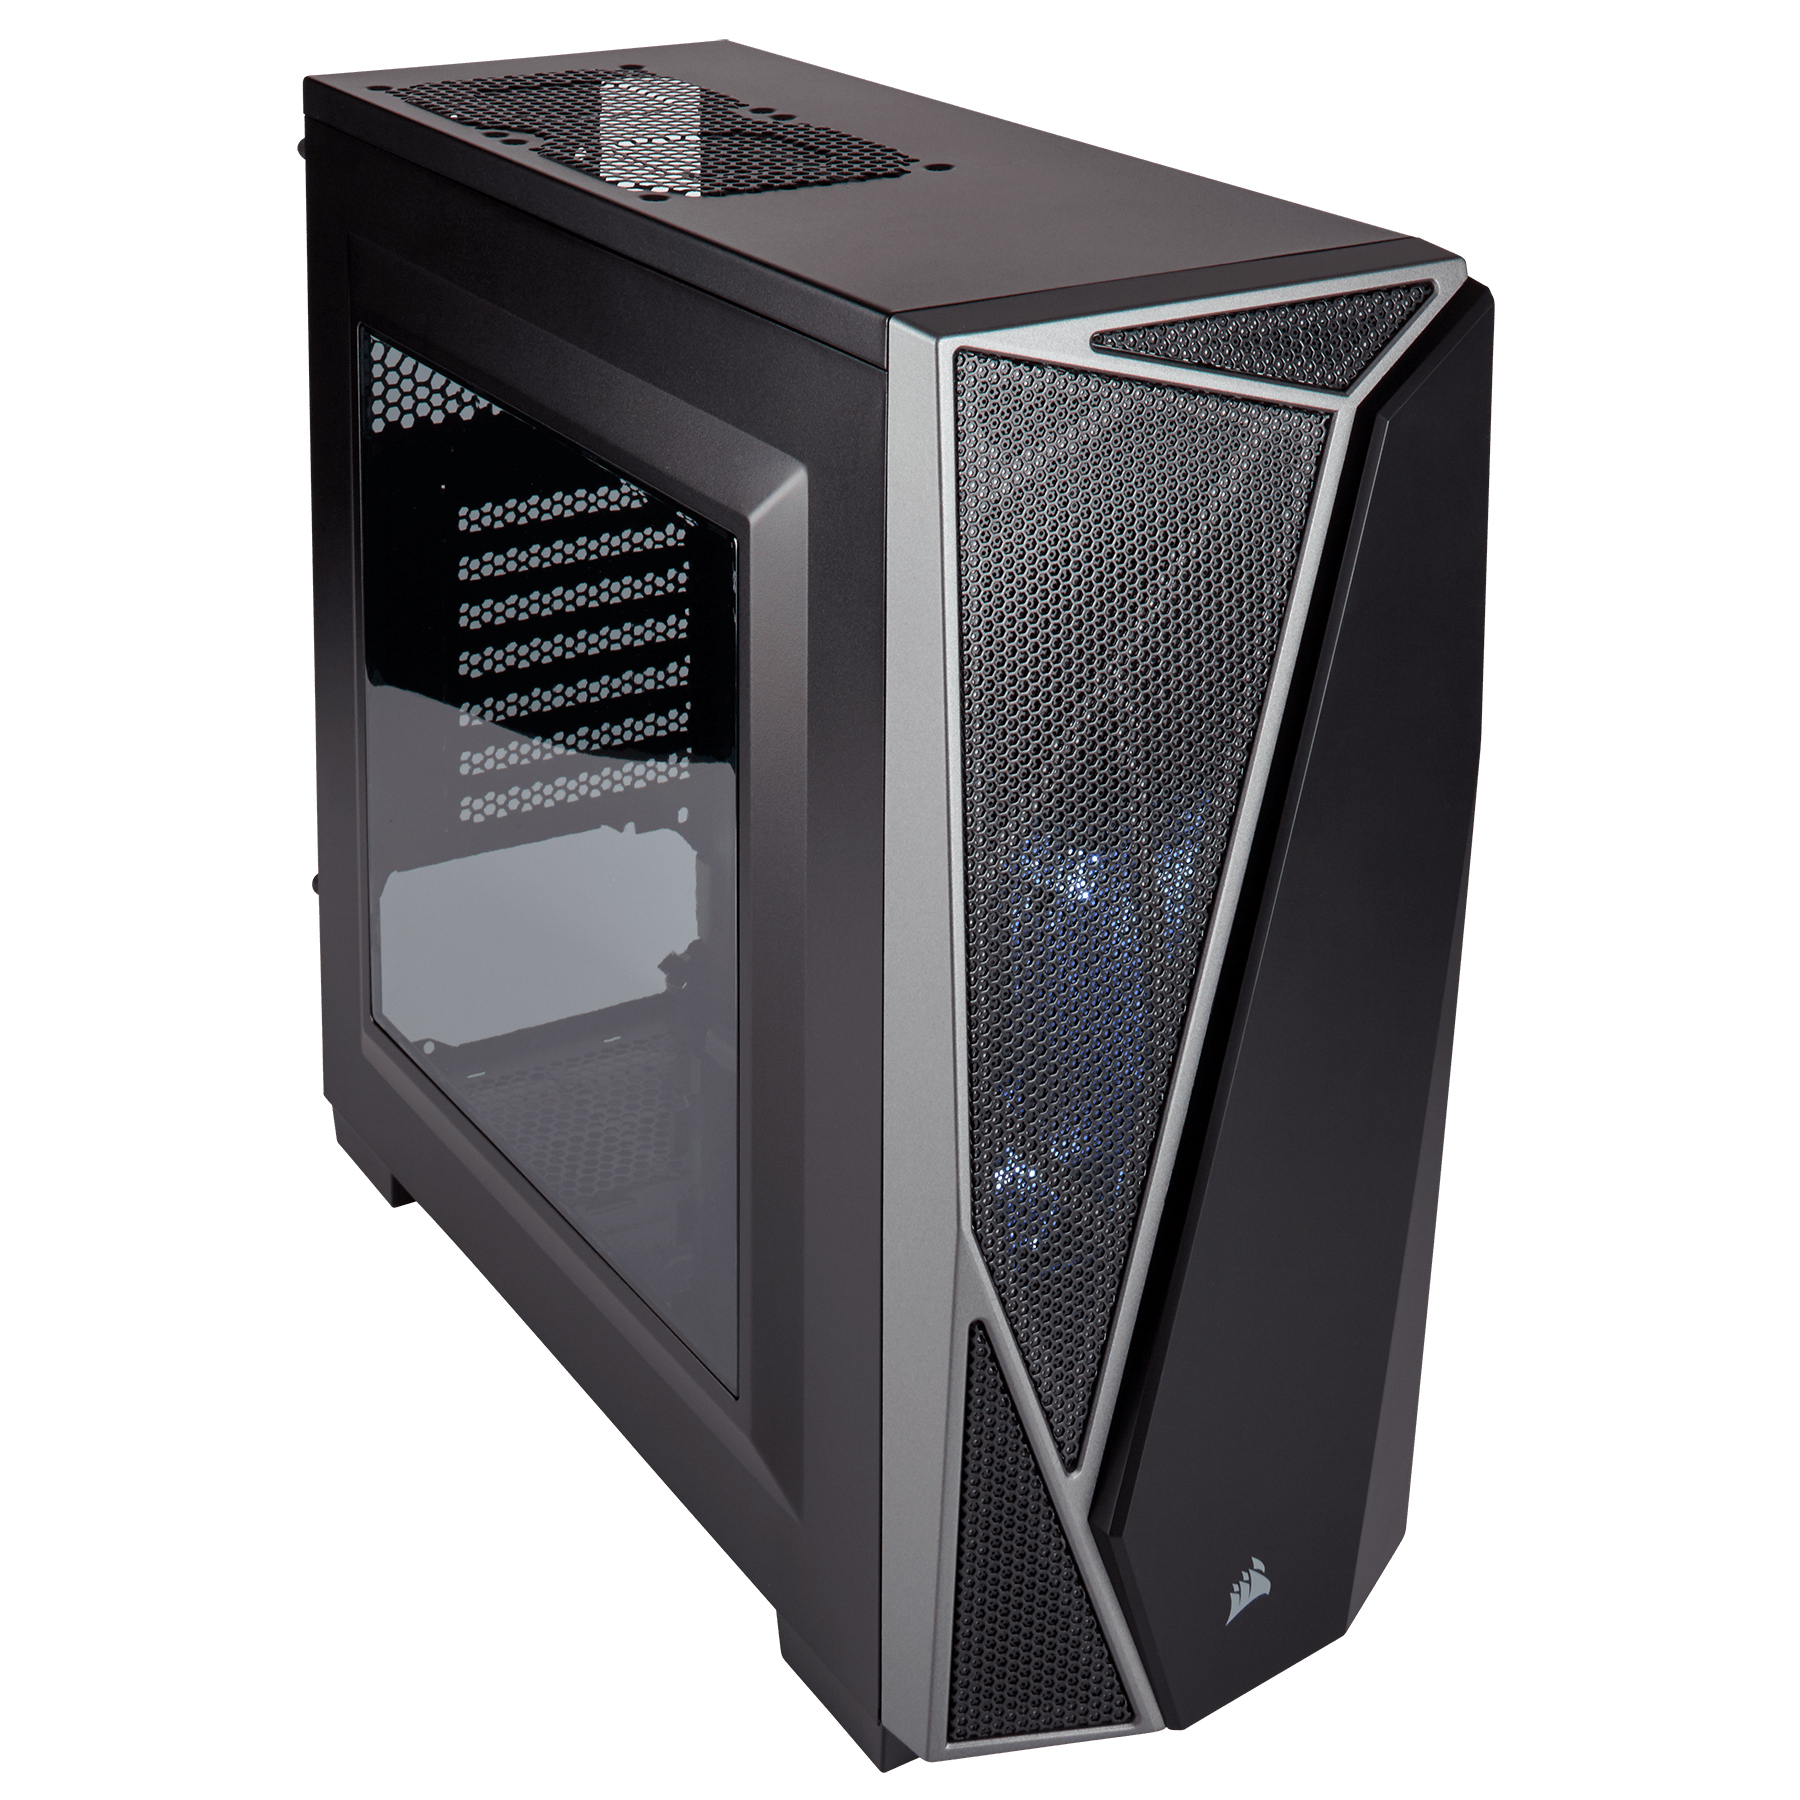 CASE CORSAIR GAMING P4 MIDDLE TOWER SPEC-04 CARBIDE SERIES BLACK/GREY CC-9011109-WW, Case & Power Supply